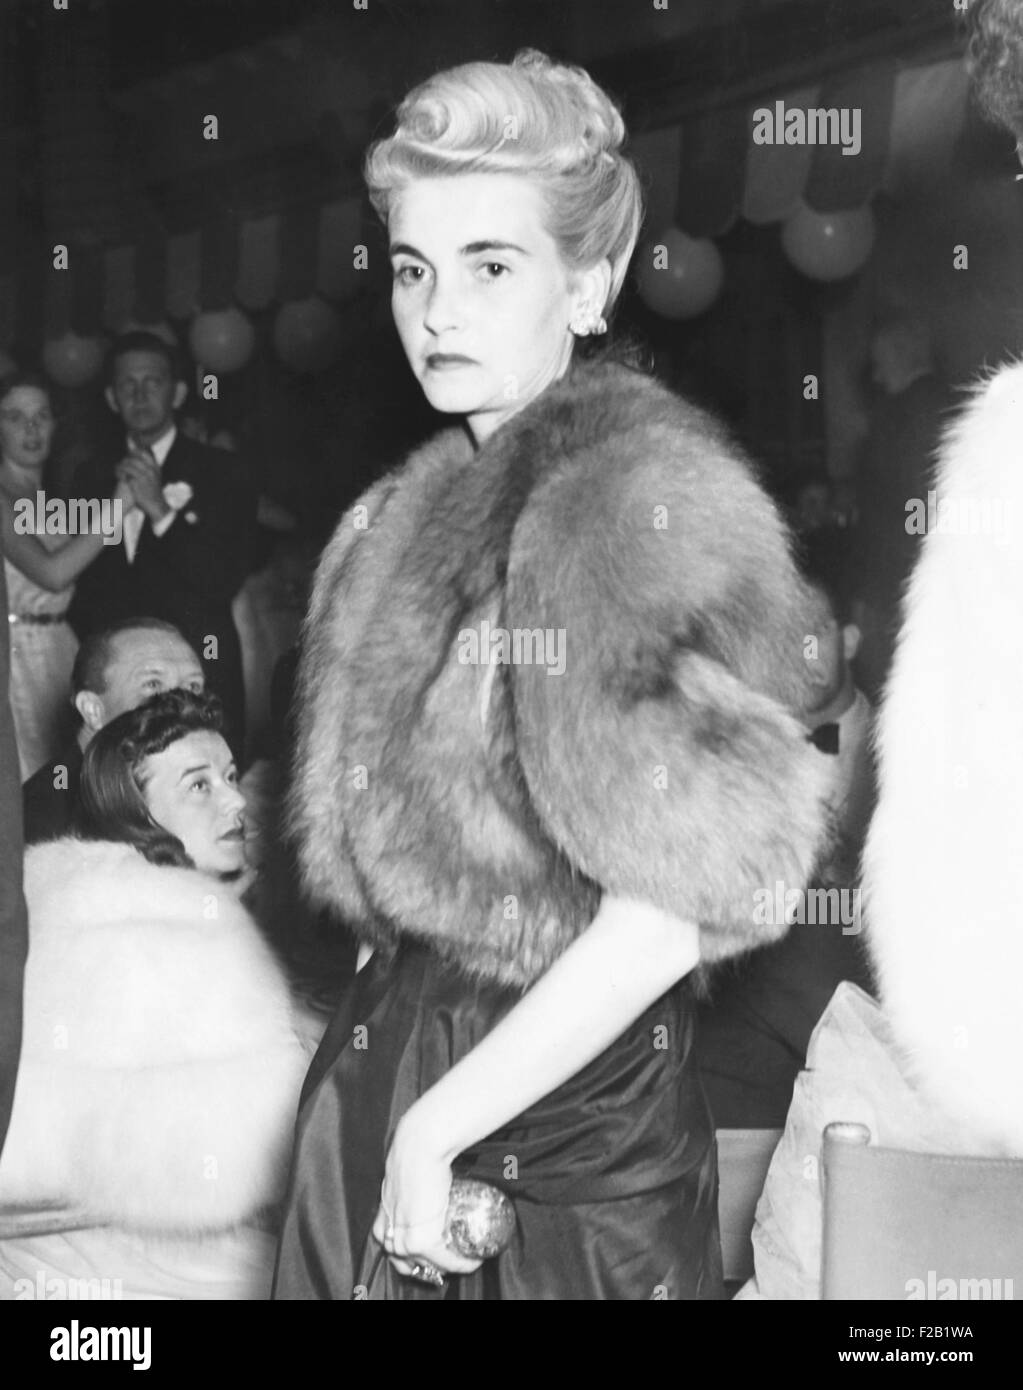 Barbara Hutton, Countess Von Haugwitz-Reventlow, in Palm Beach, Jan. 19, 1940. She arrived at the Colony Club, an - Stock Image